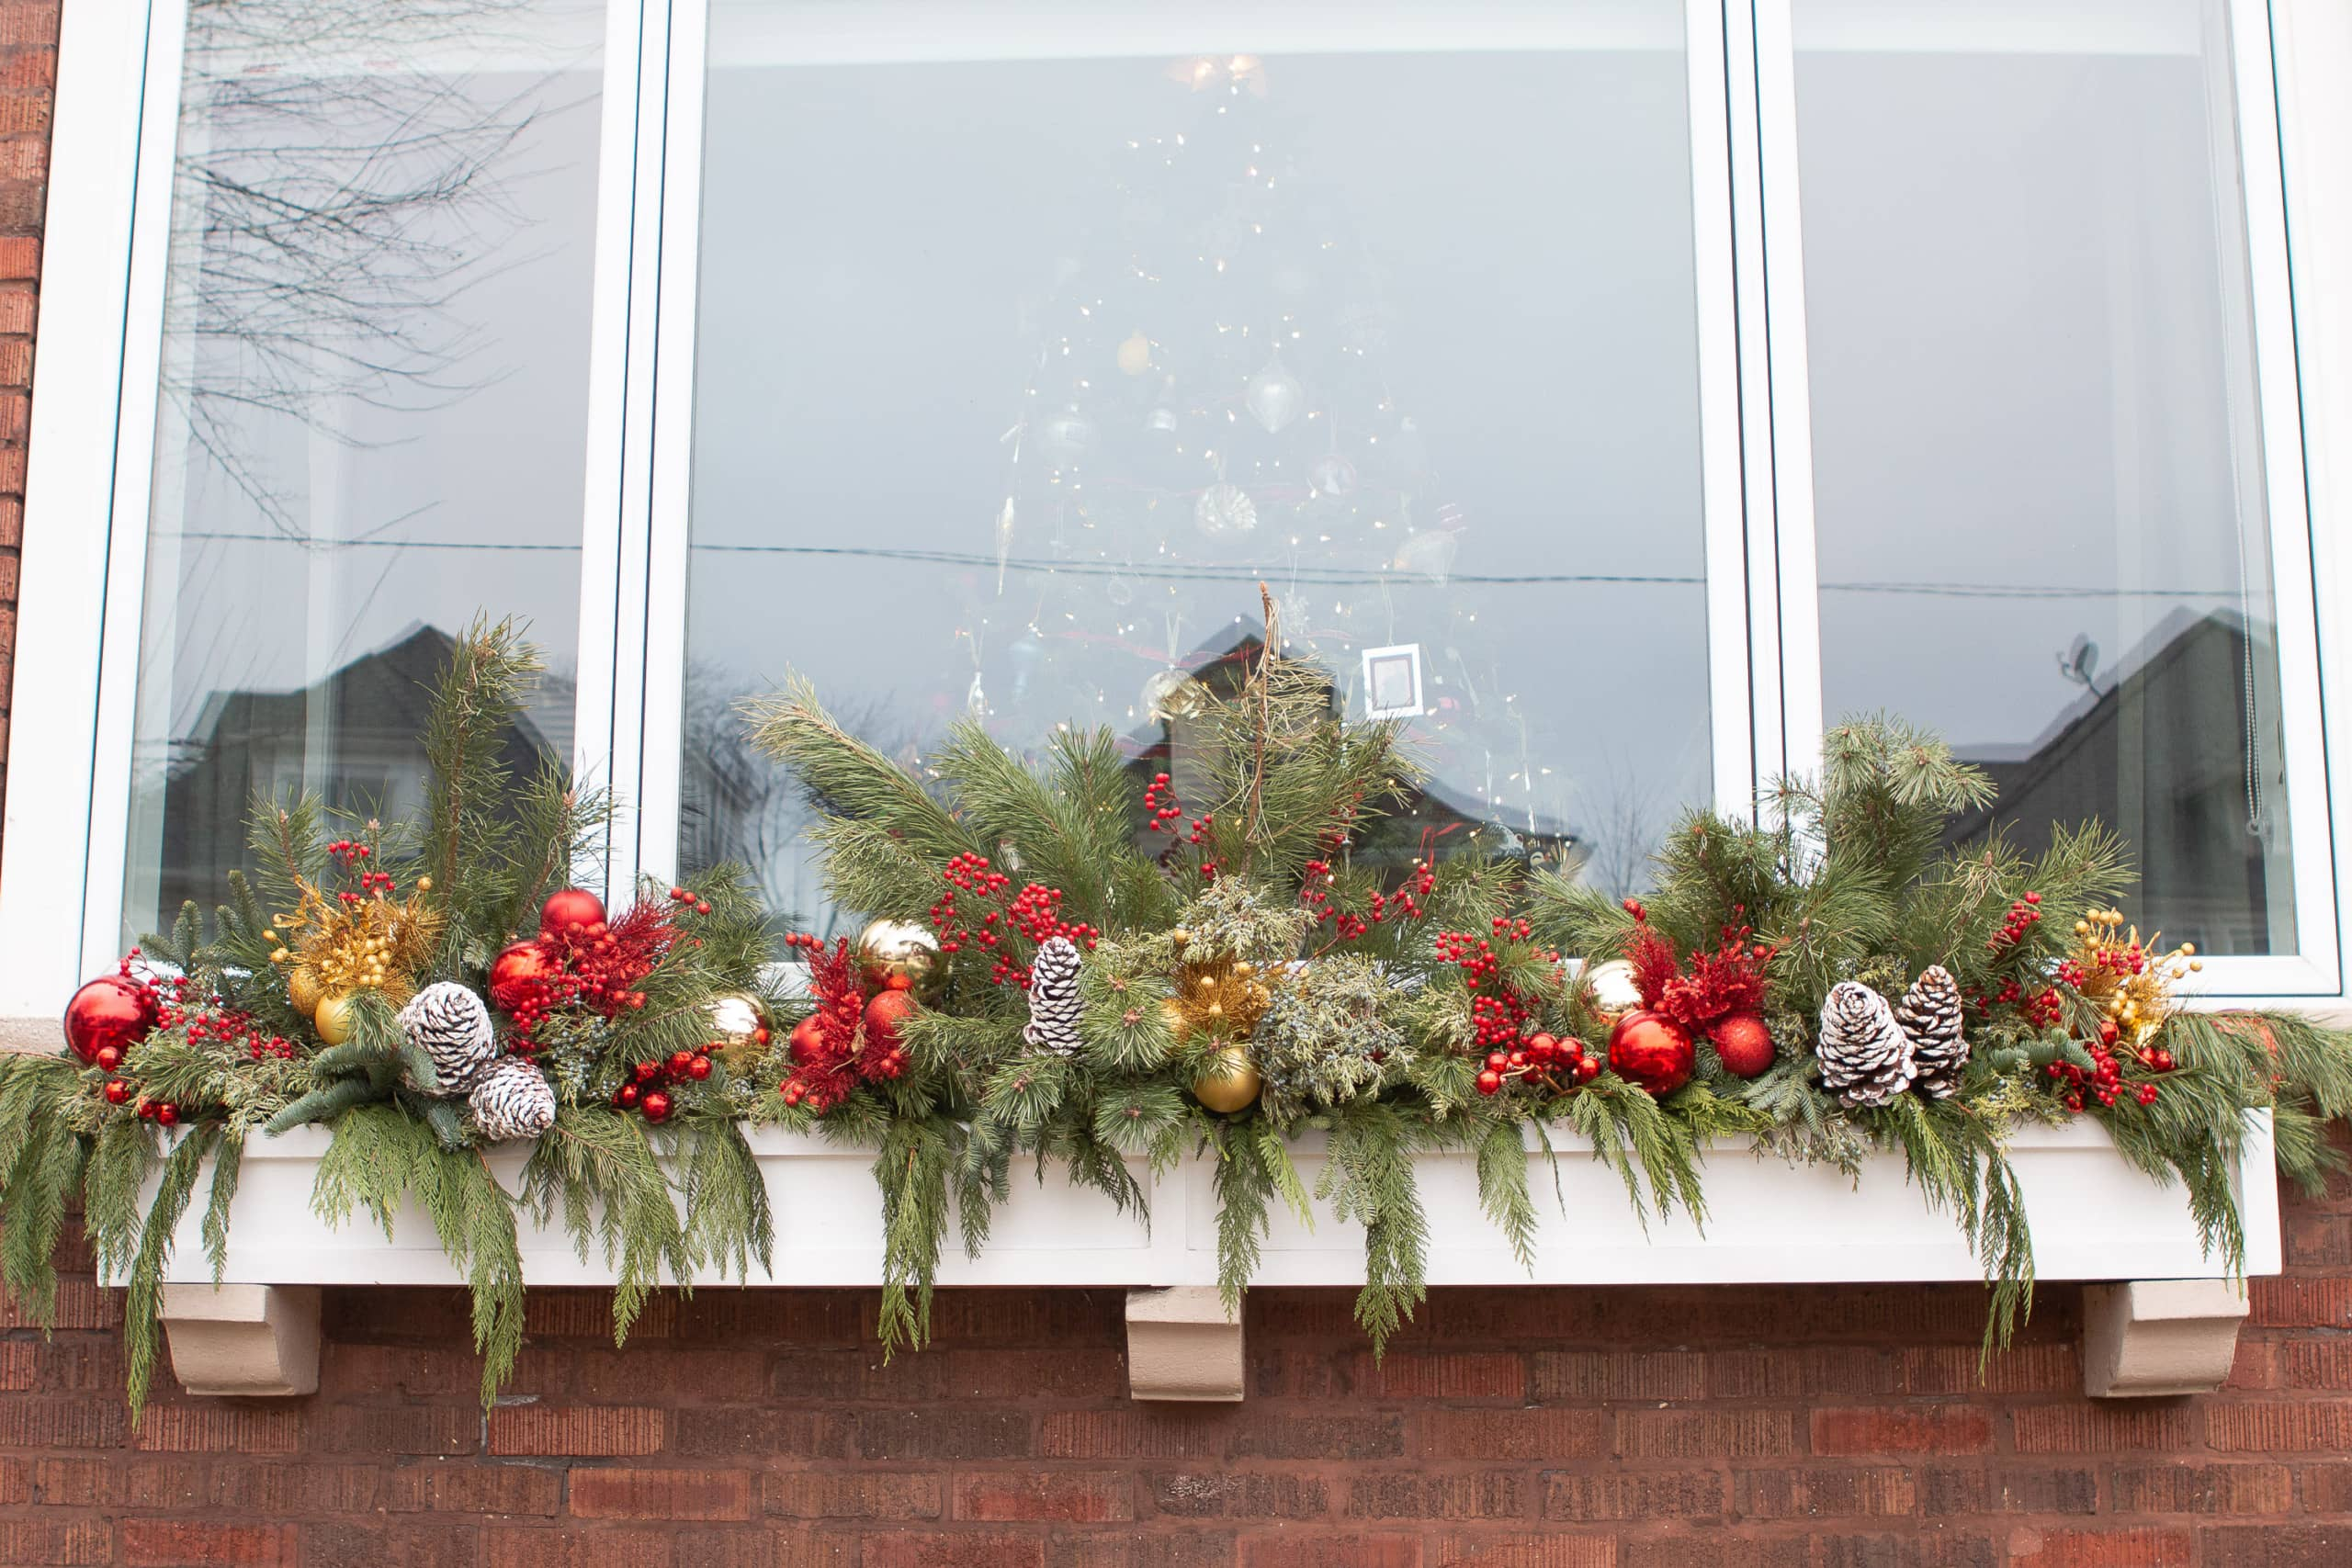 Our holiday front window box